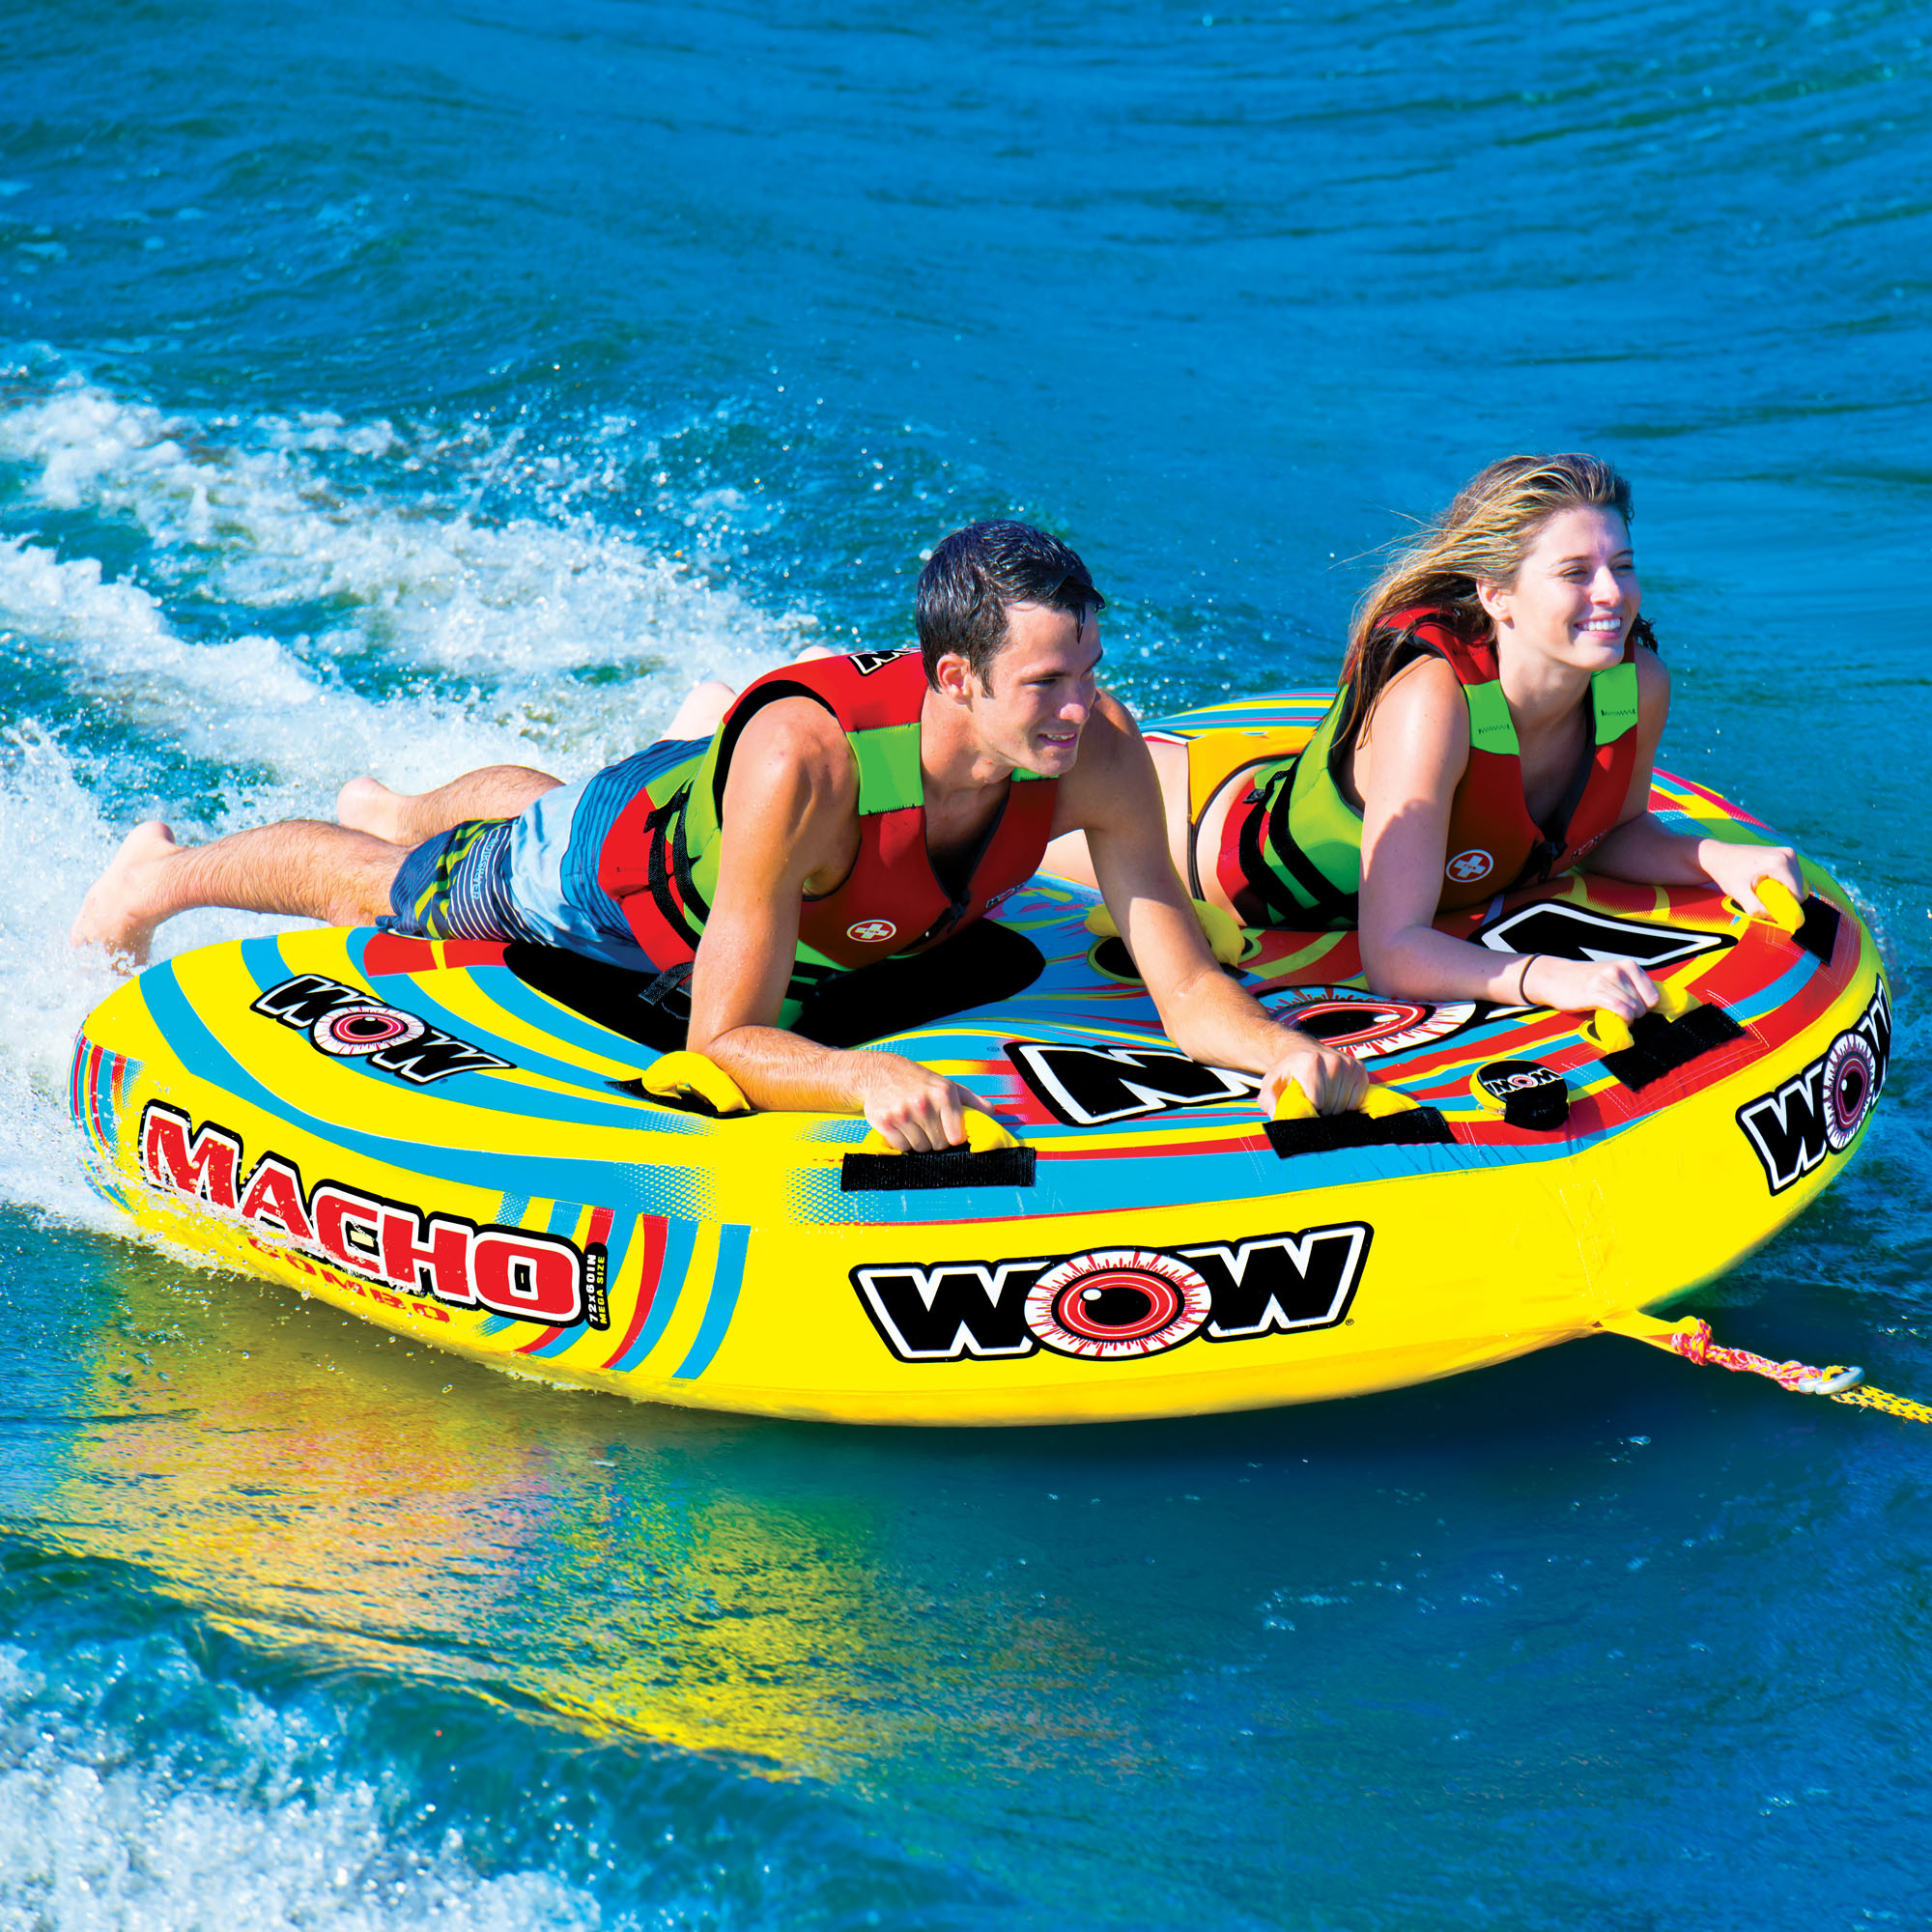 Macho Combo 2 Wow World Of Watersports Tow Harness For Towables Persons